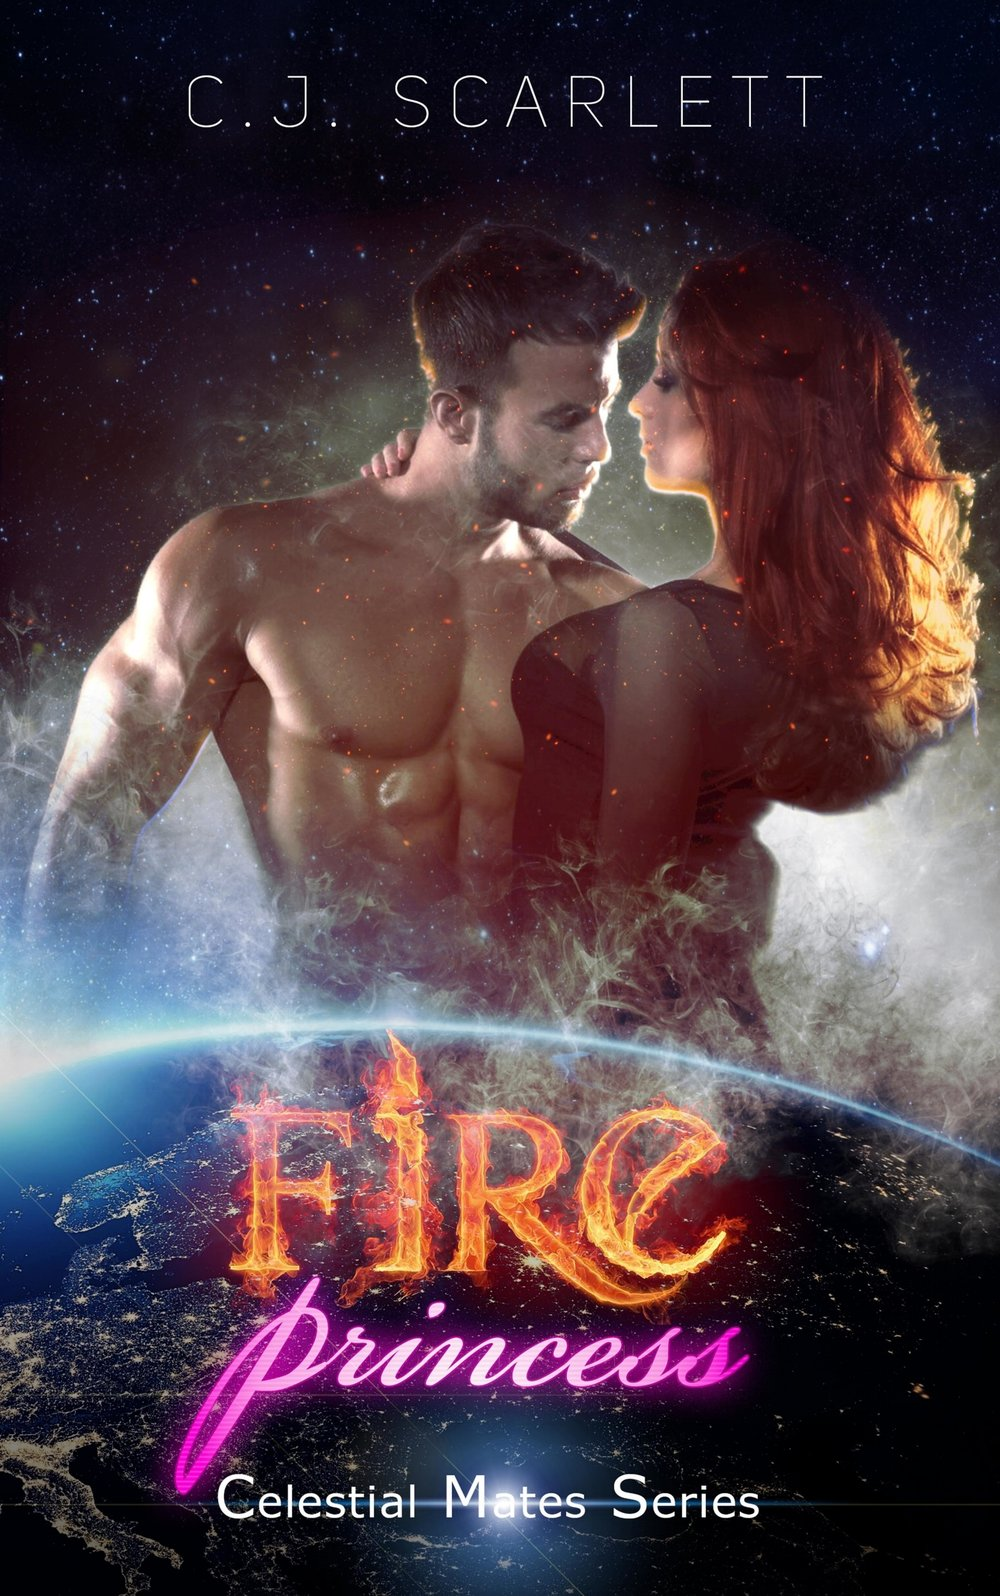 Fire Princess - C.J. Scarlett    Selene Jordan is shocked to find herself whisked away from Earth by unscrupulous aliens, bent on selling her to the highest bidder.